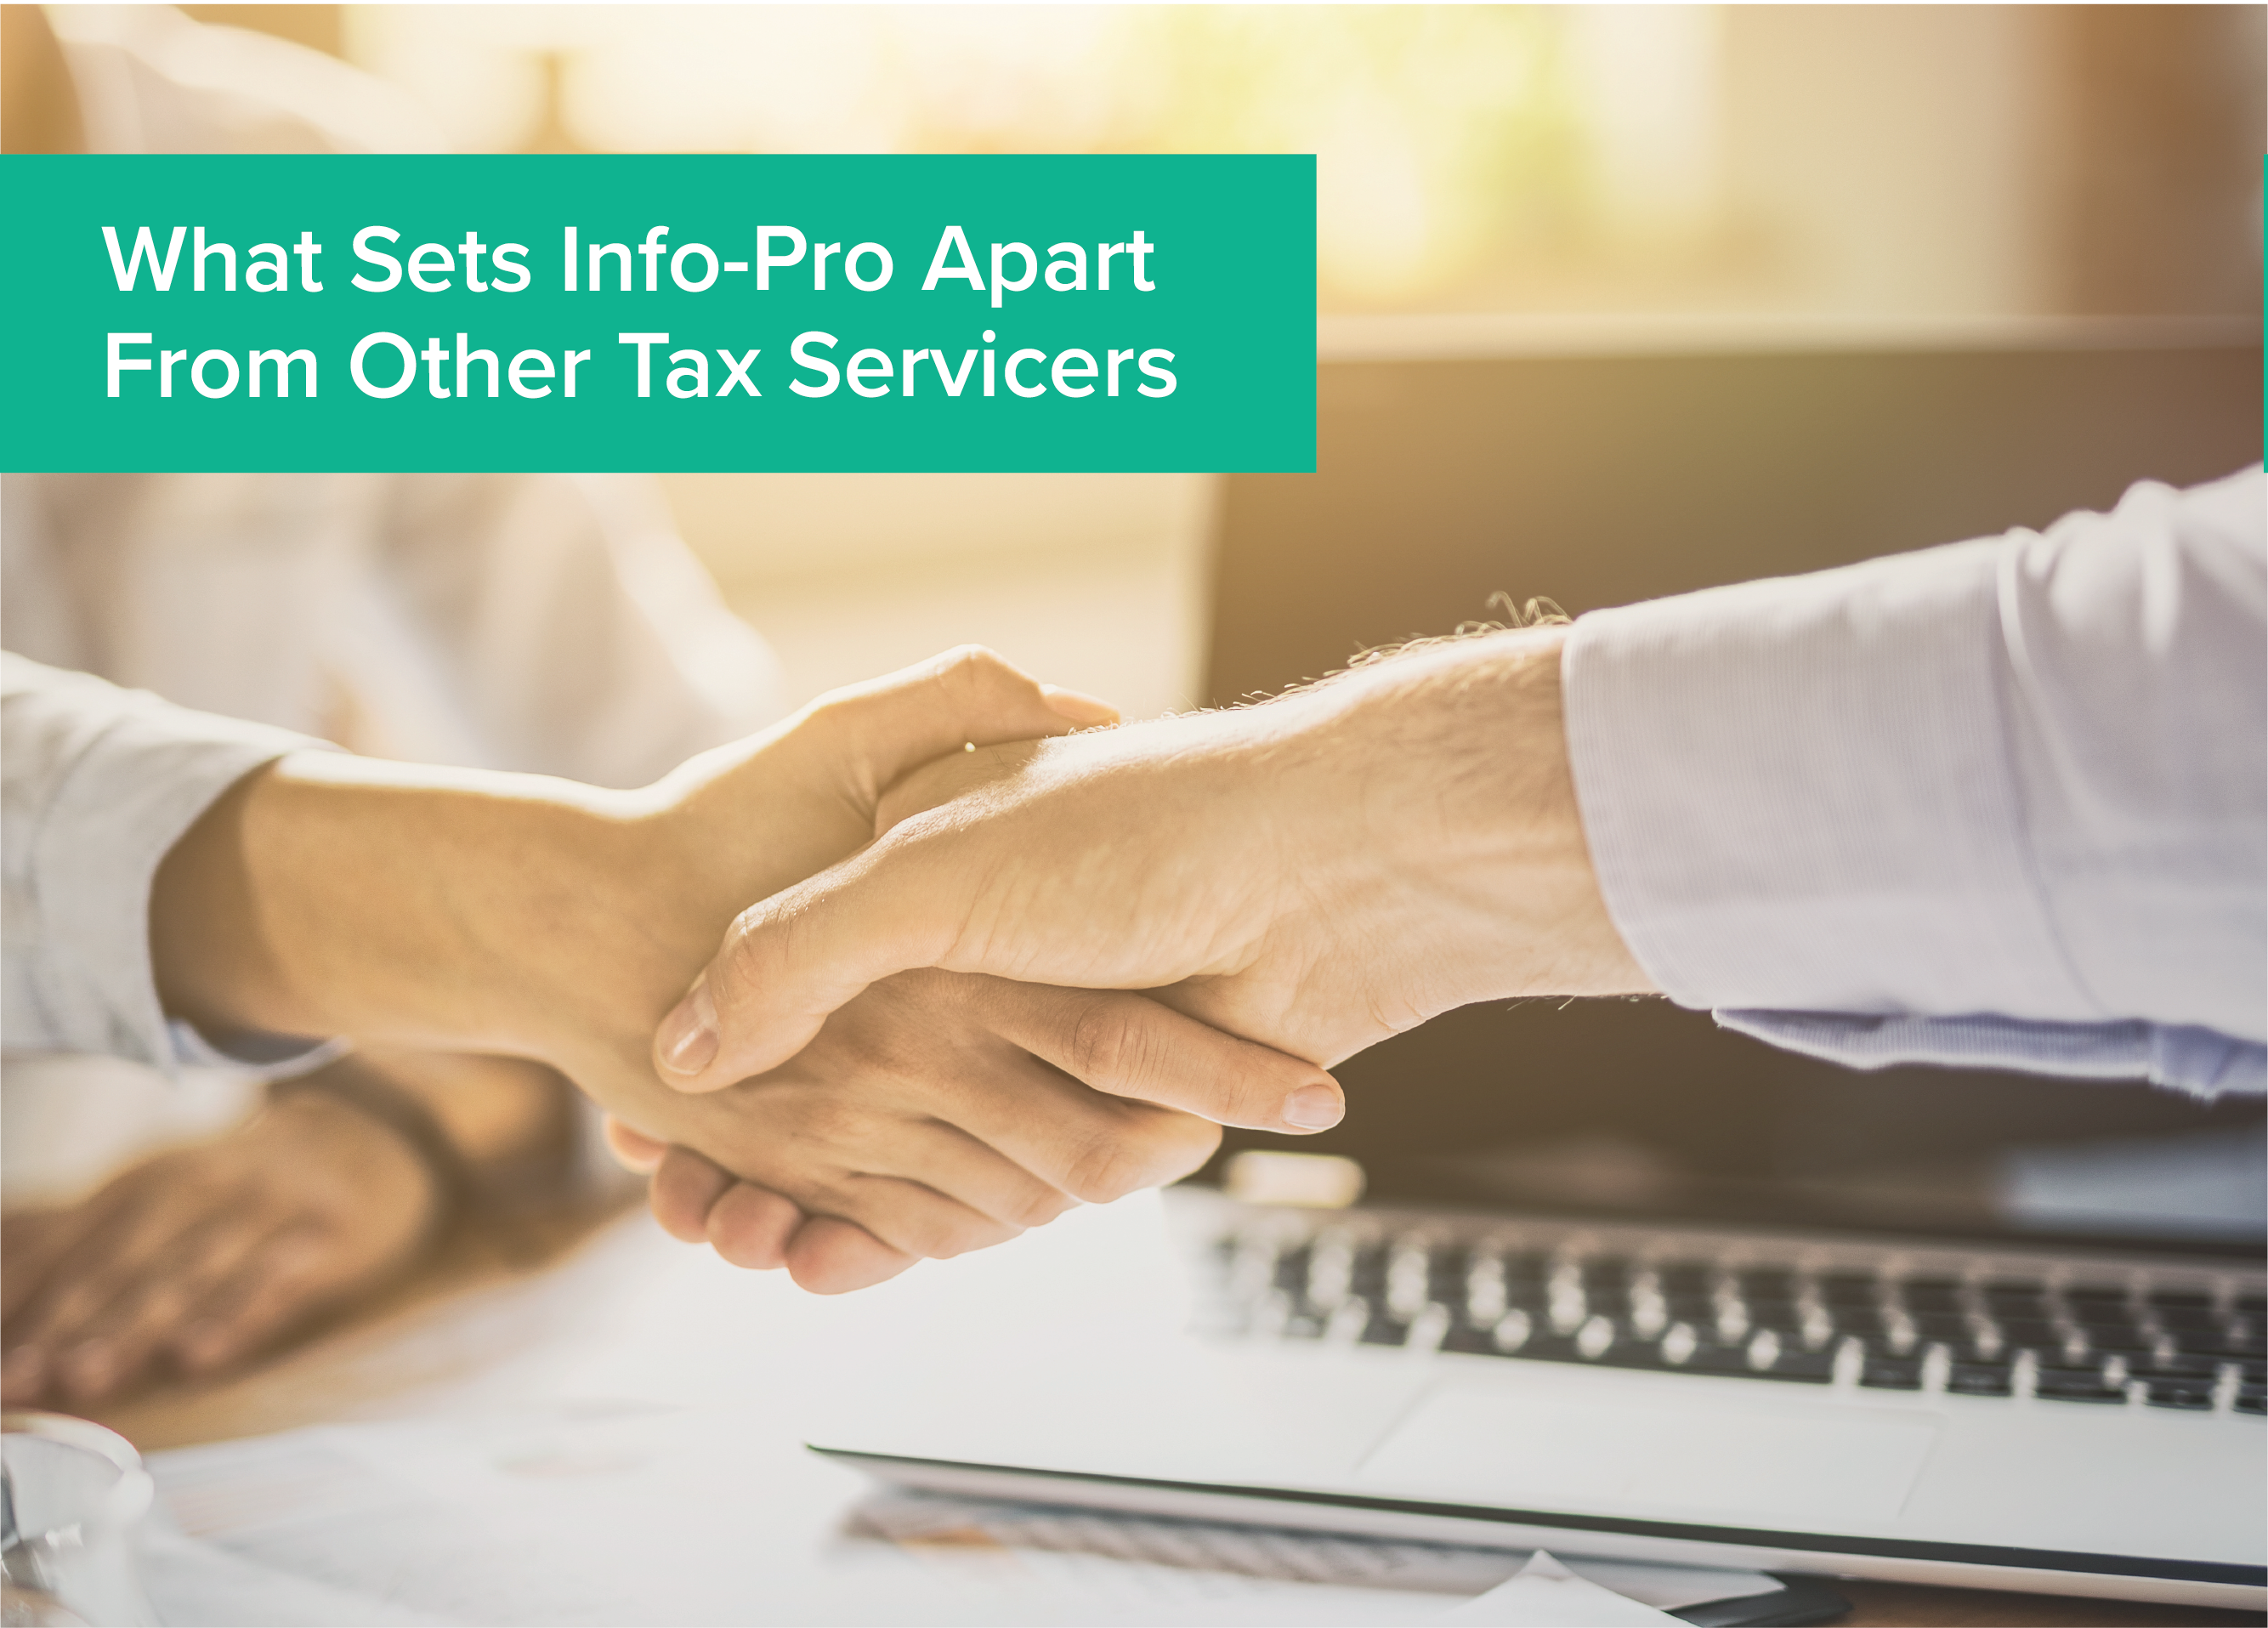 What Sets Info-Pro Apart From Other Tax Servicers